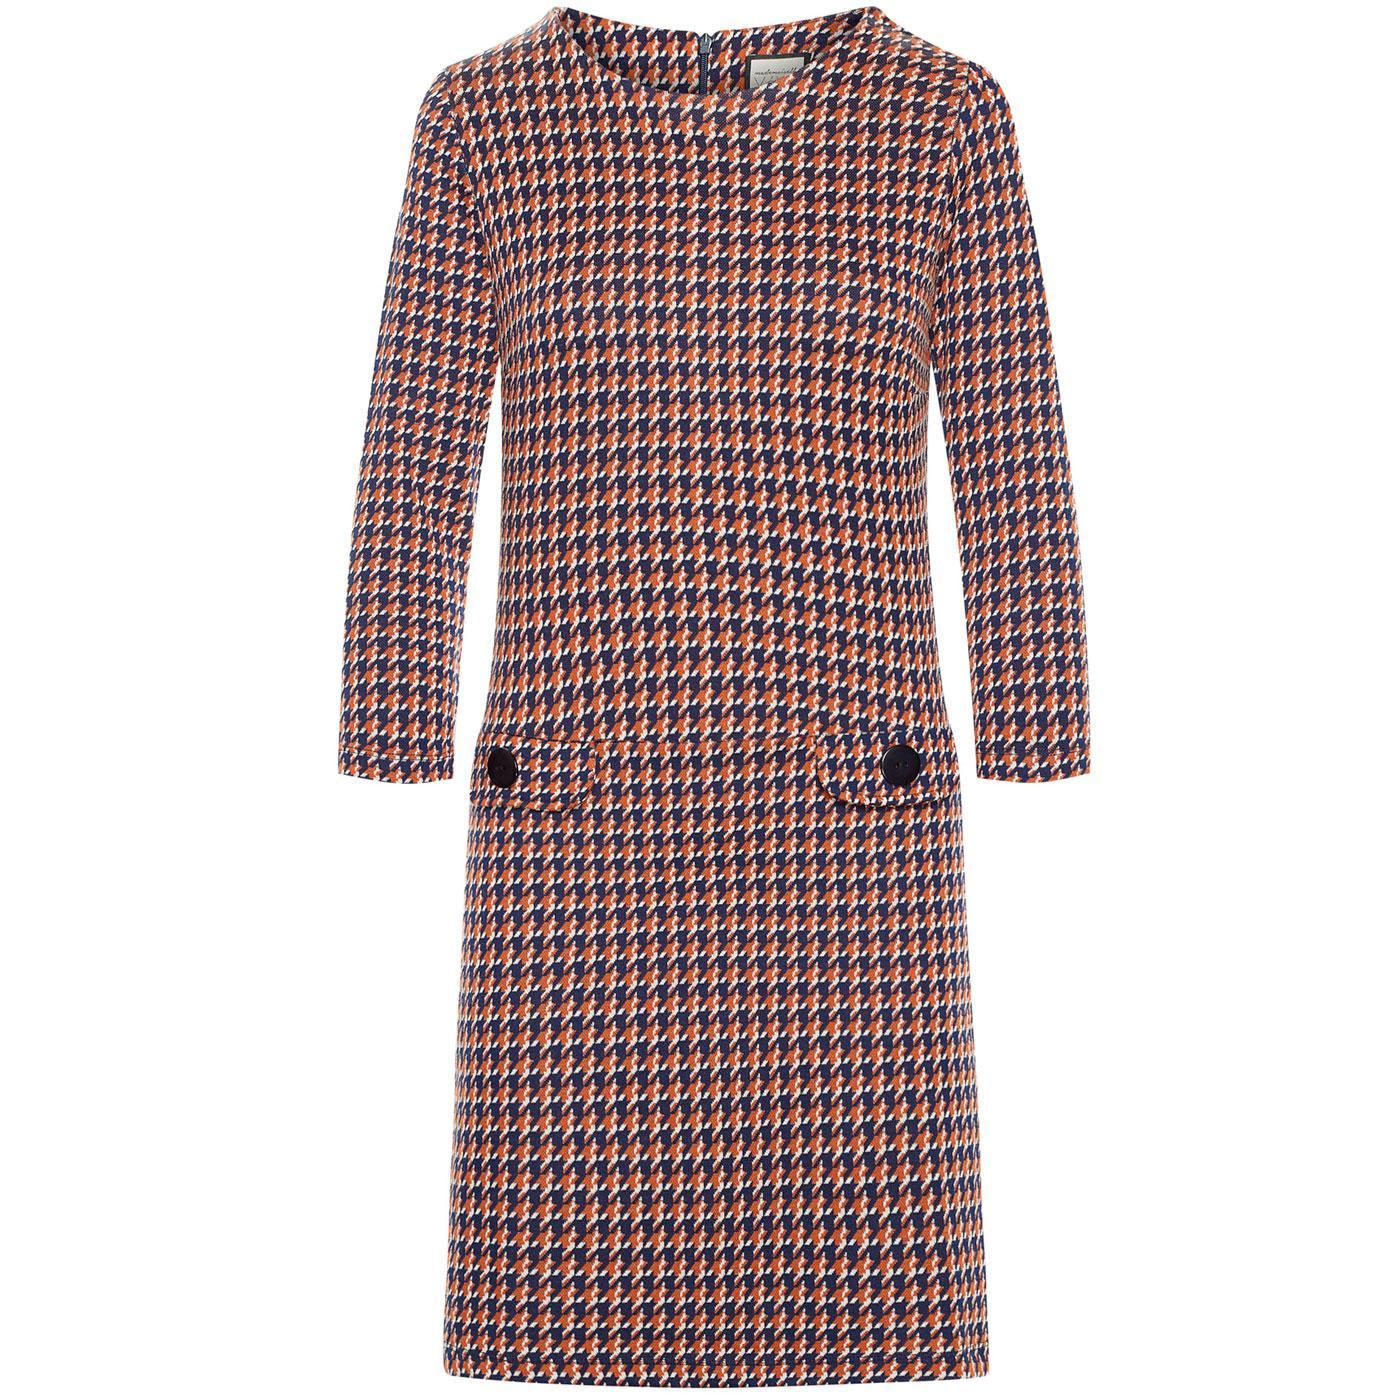 Nine To Five MADEMOISELLE YEYE Houndstooth Dress